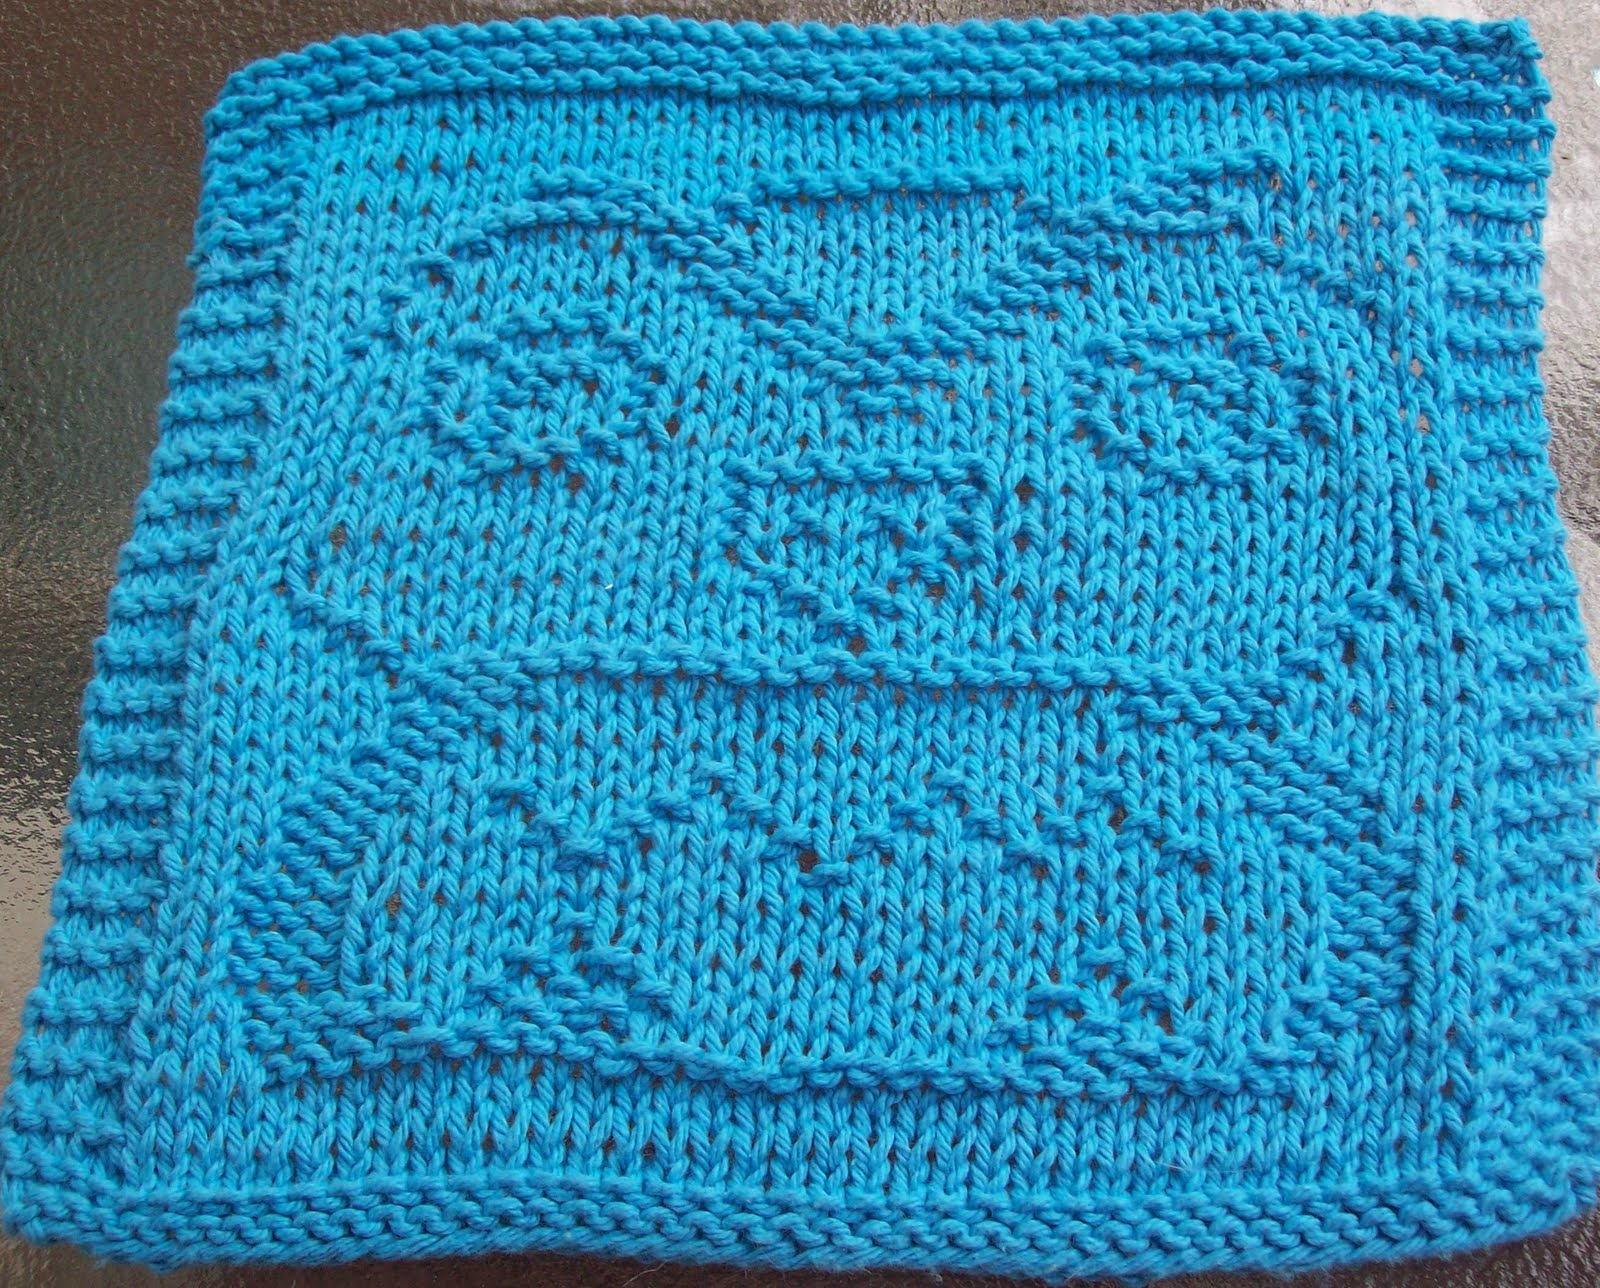 KNITTED PATTERNS FOR DISHCLOTHS   Browse Patterns